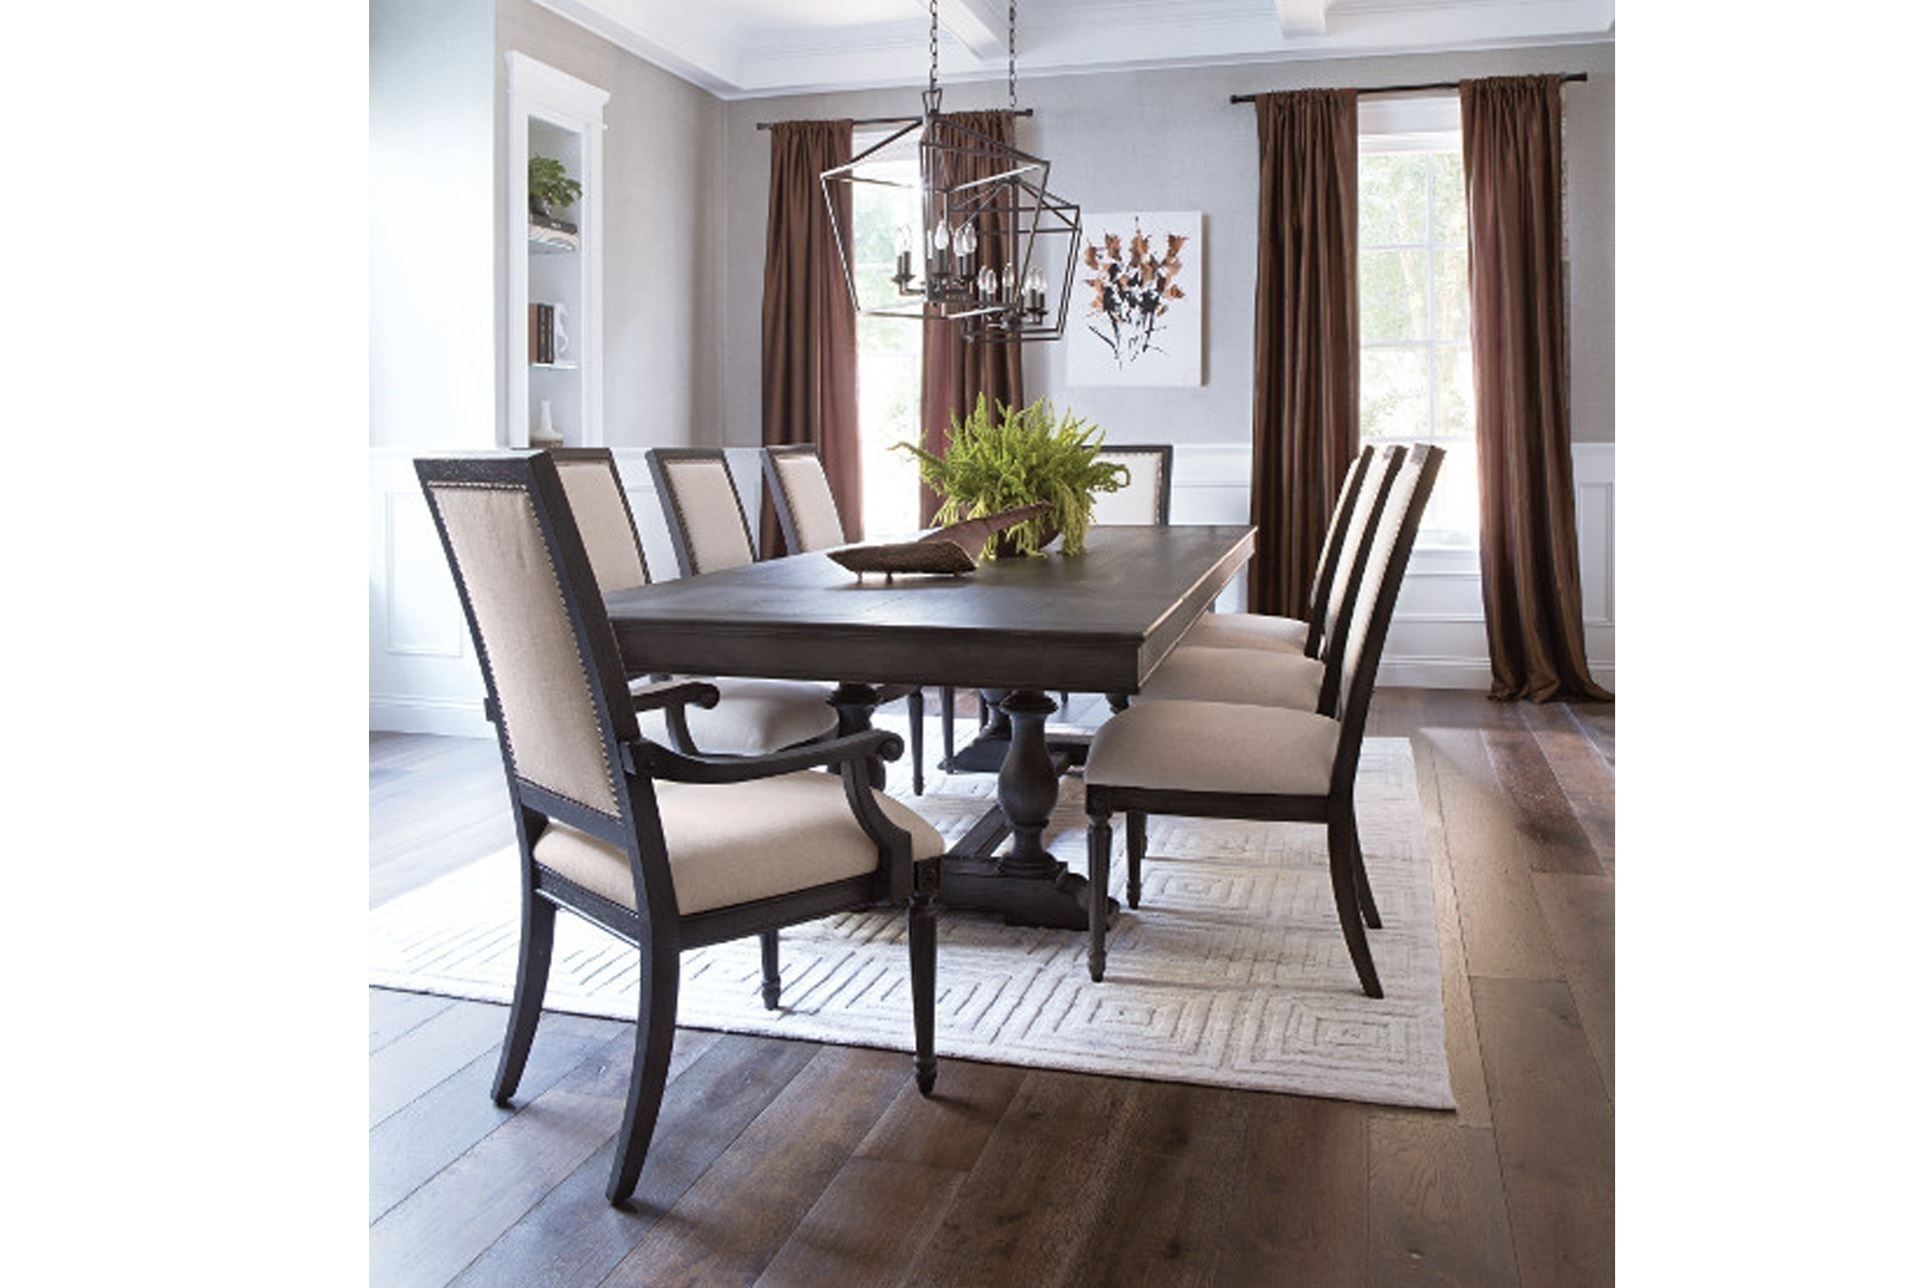 Chapleau 9 Piece Extension Dining Set | Dining Room | Pinterest With 2018 Chapleau Ii 9 Piece Extension Dining Tables With Side Chairs (View 4 of 20)